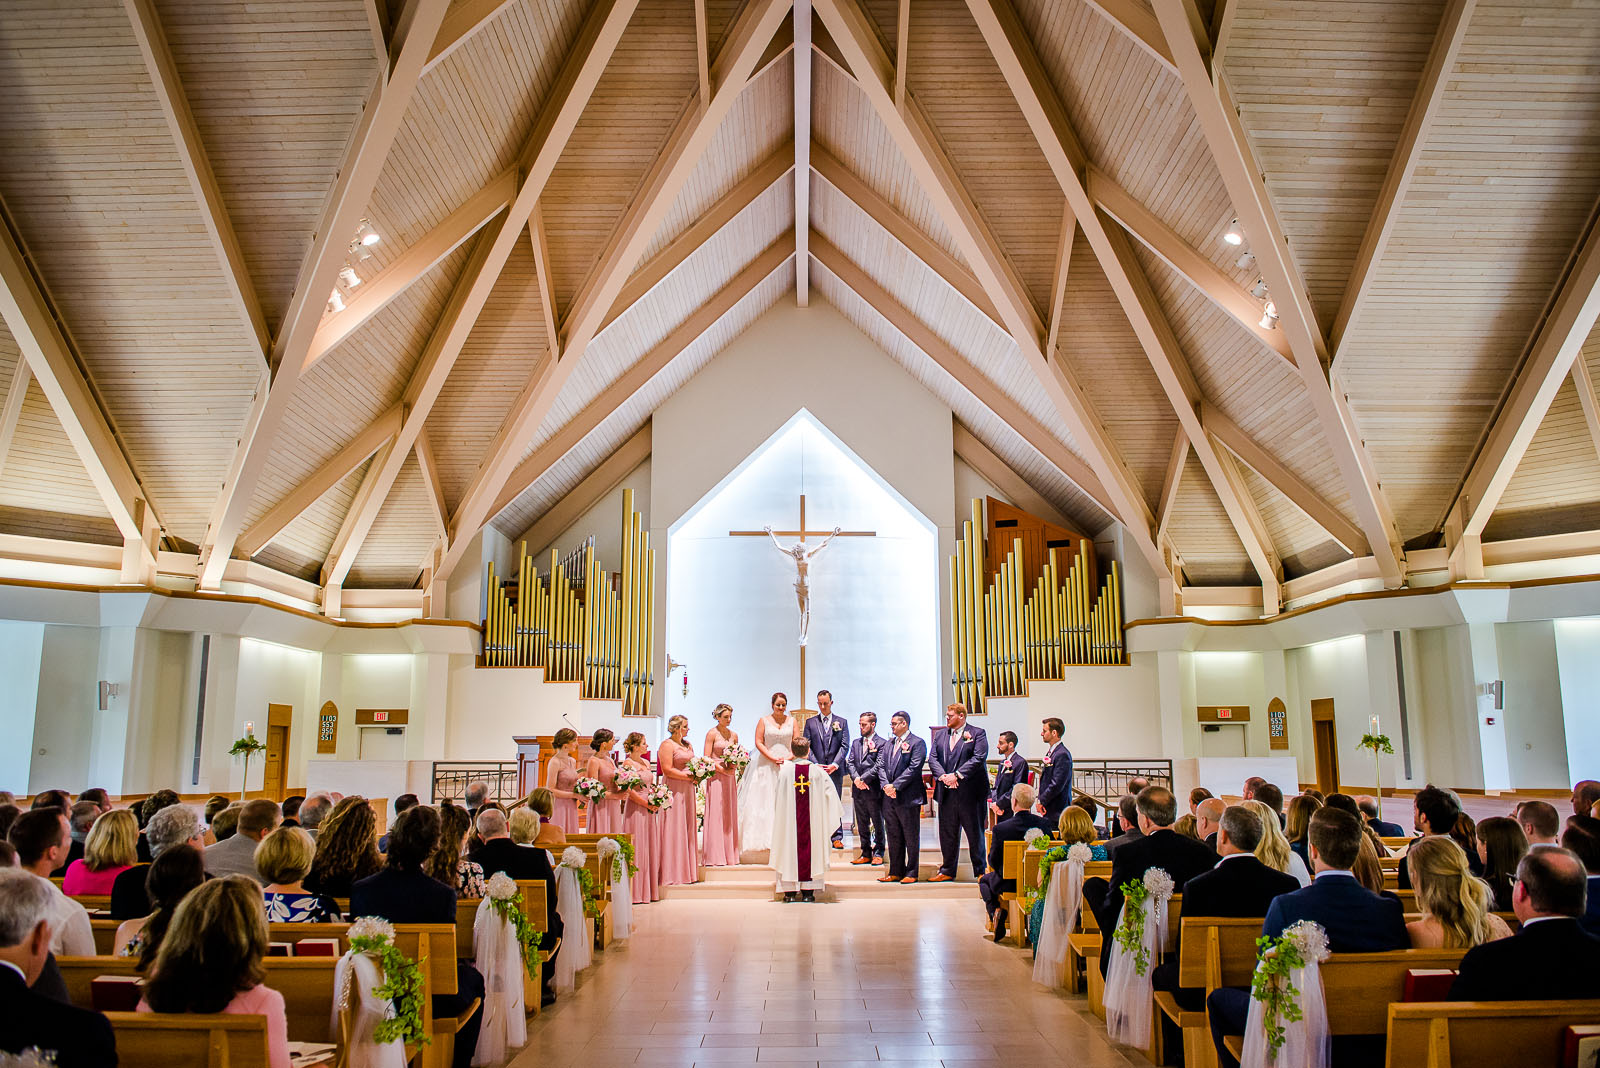 Eric_and_Christy_Photography_Blog_Wedding_Paige_Eric-12